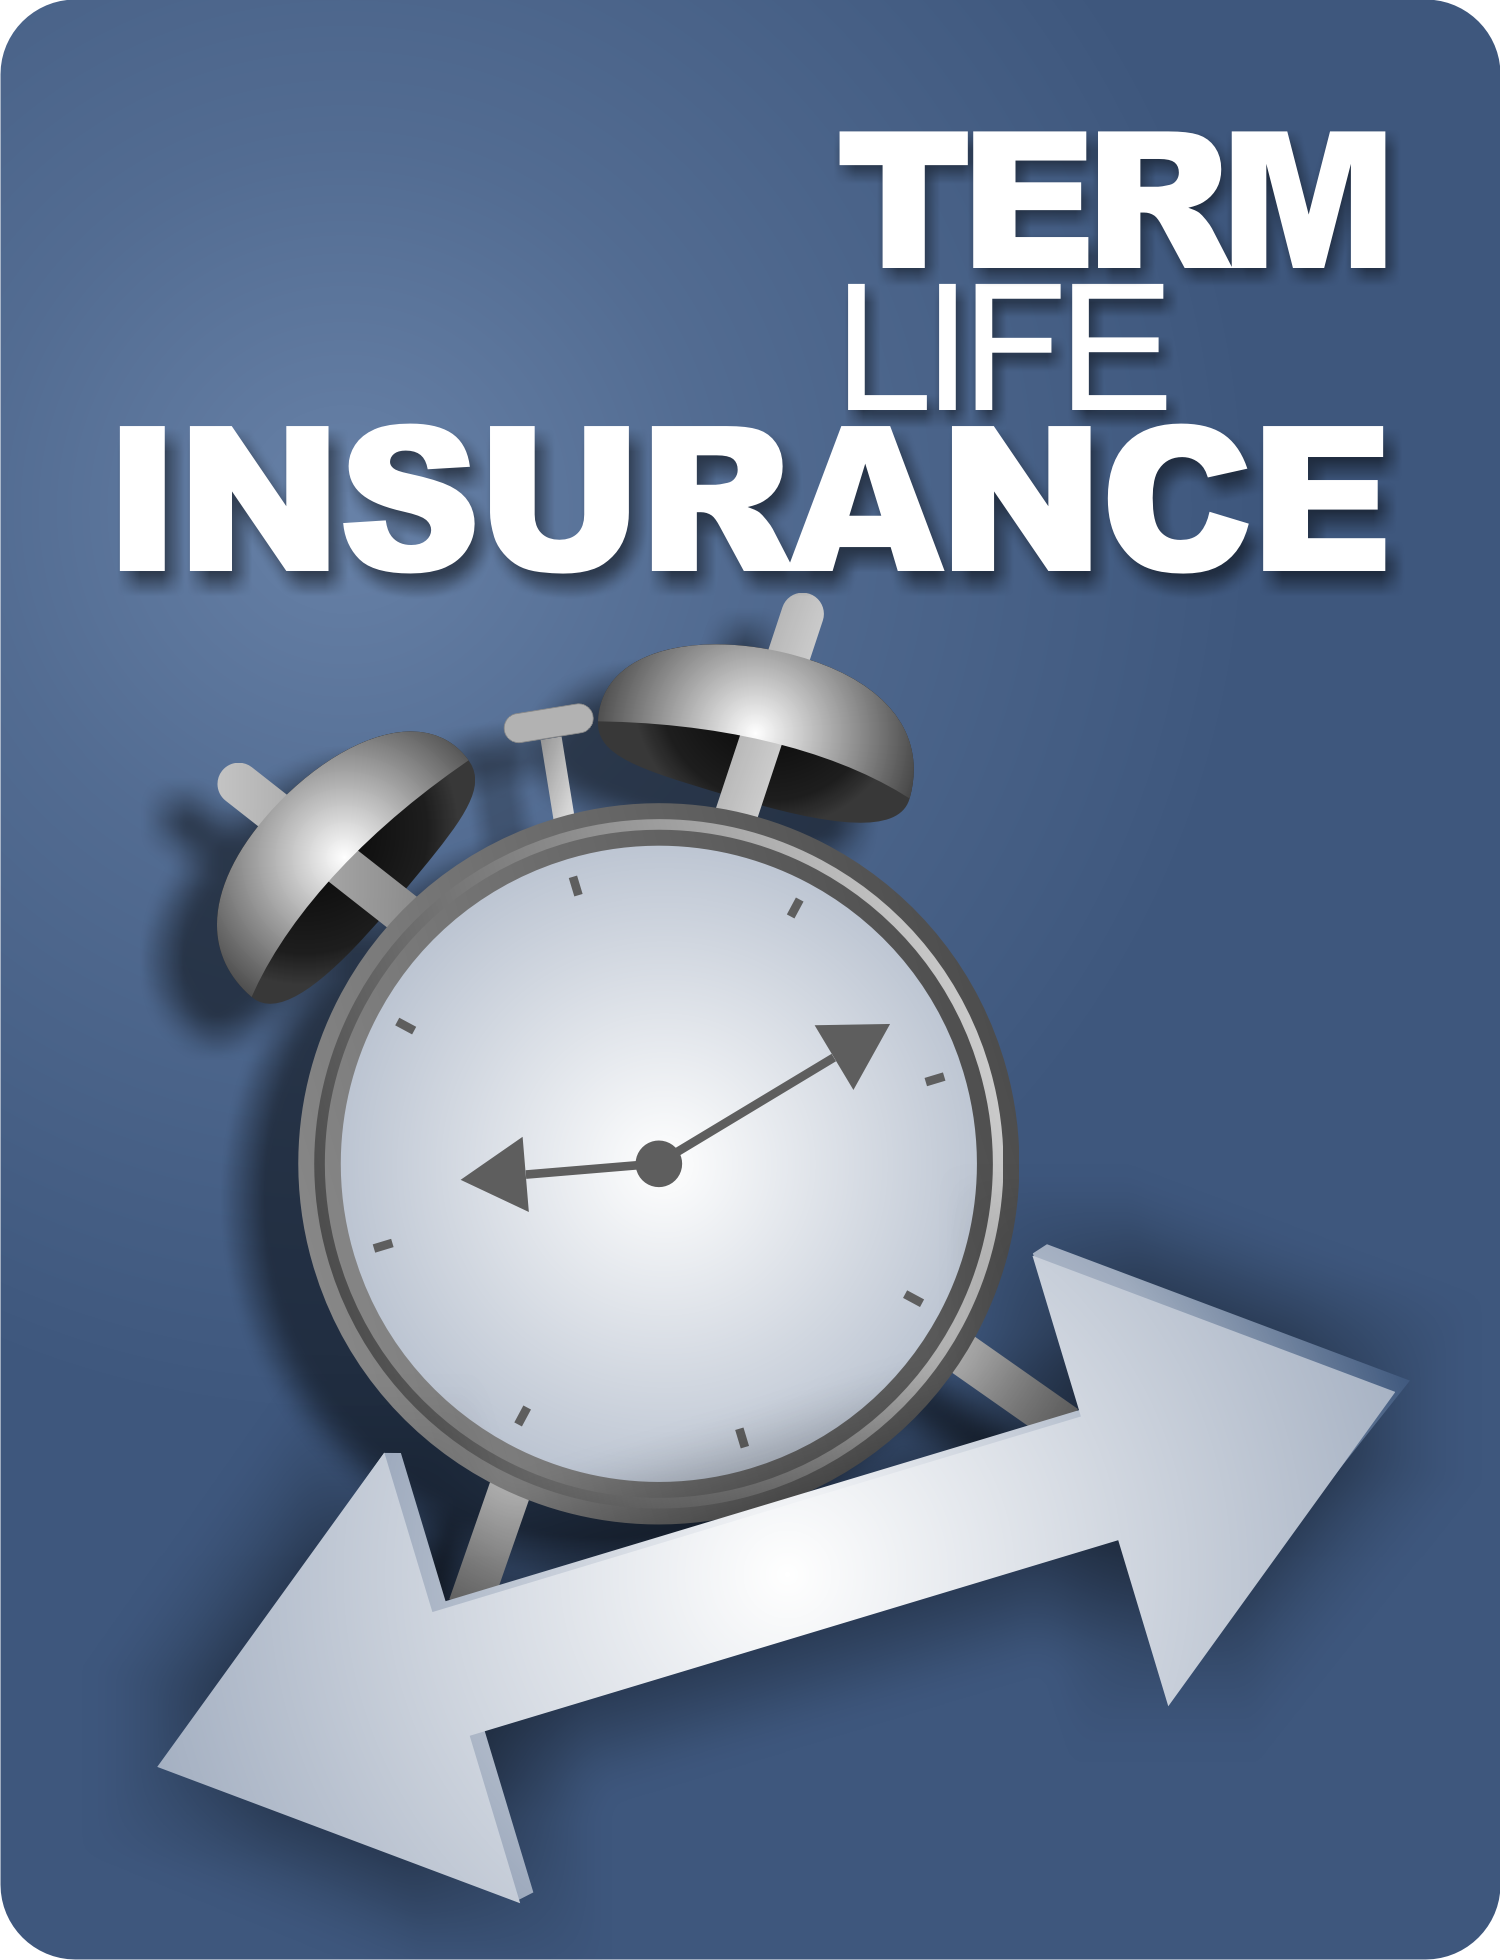 Cheap Insurance Life Quote Term Don't Wait Until It's Too Late Protect Your Family With A Term